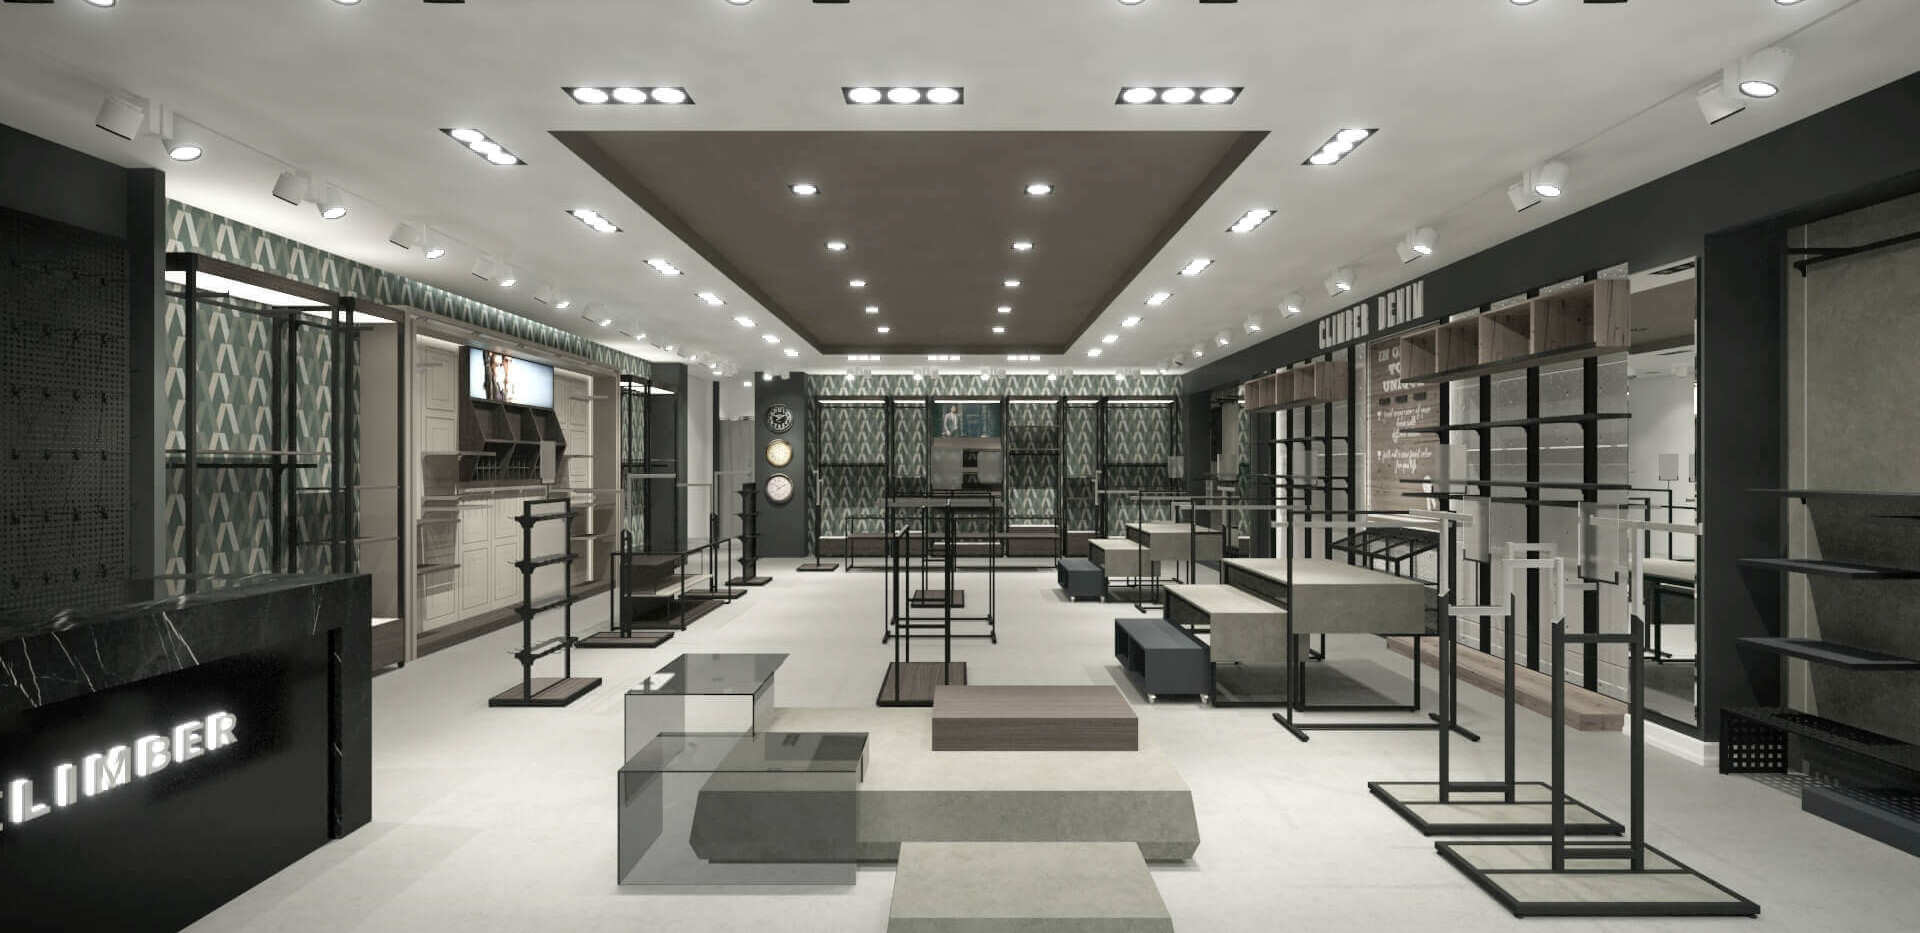 Climber - Fashion Store Shop Design-1.jp